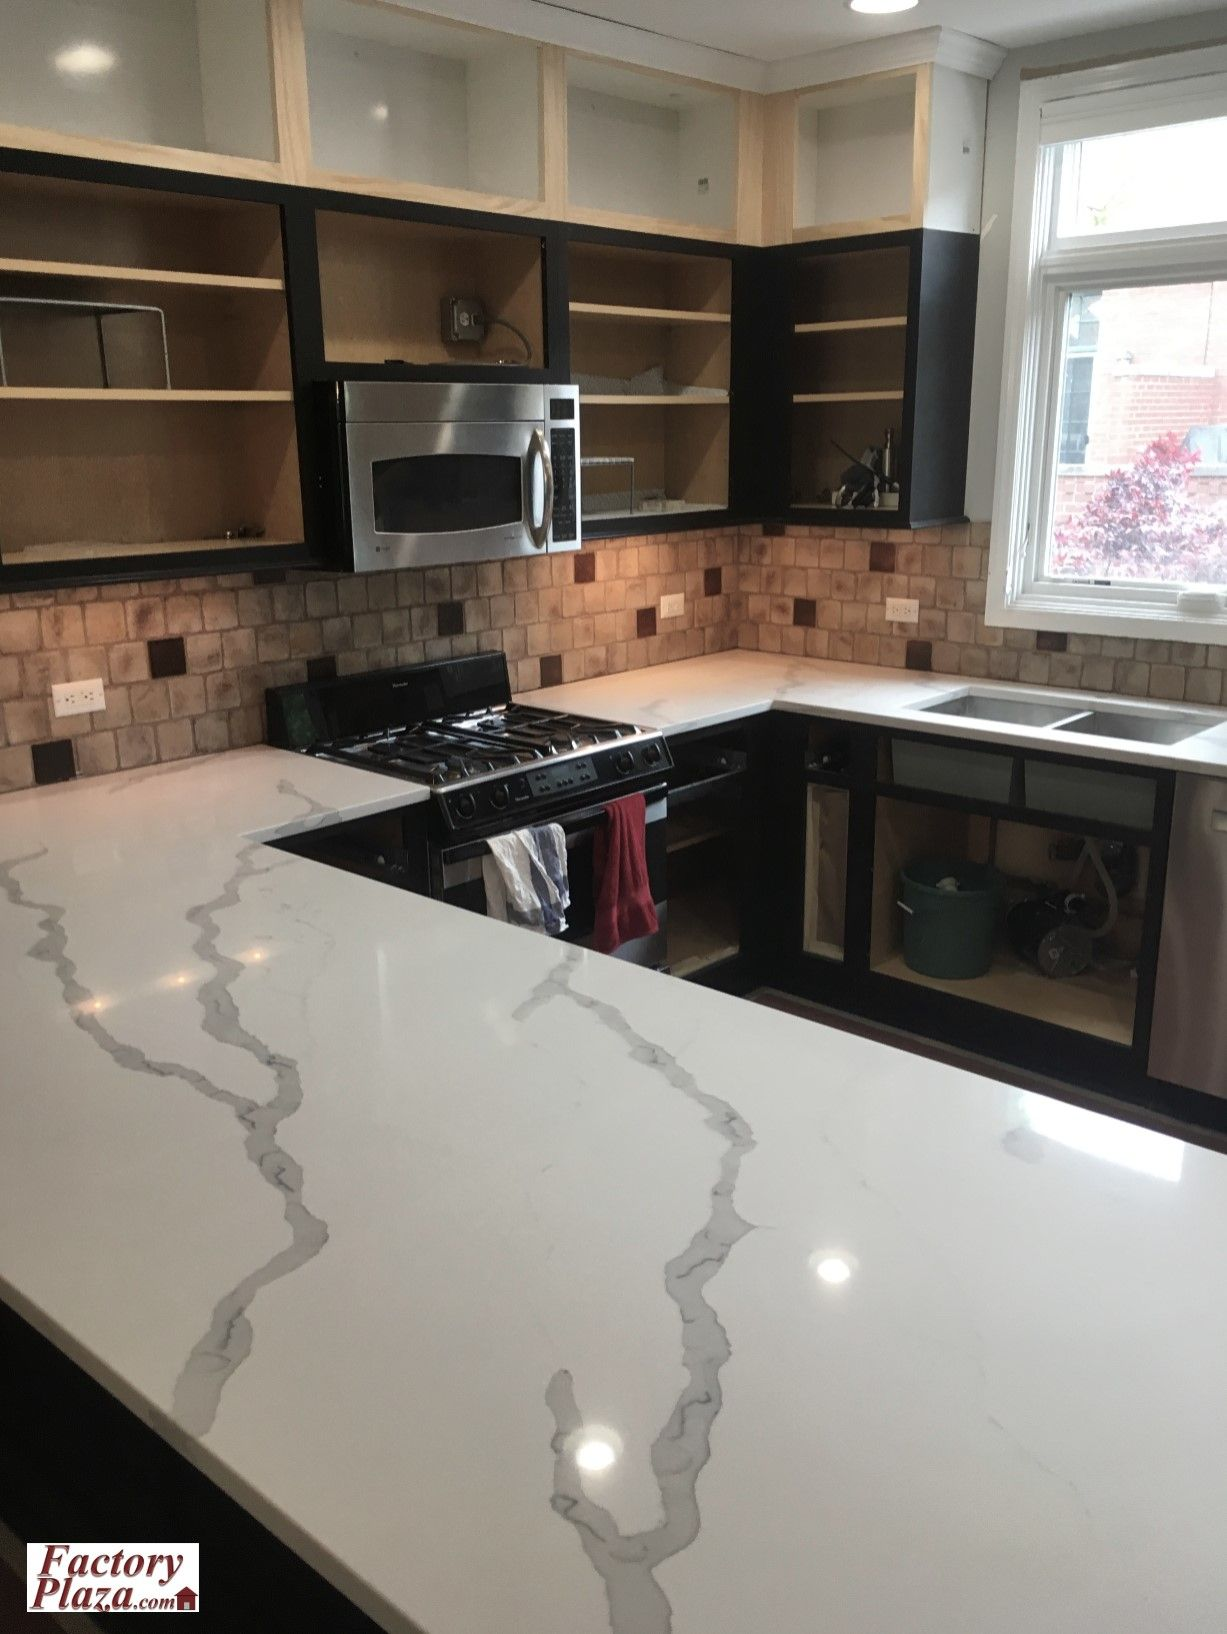 Quartz Countertop Just Installed By Factory Plaza Kitchen Cabinets And Countertops Quartz Countertops Granite Quartz Countertops